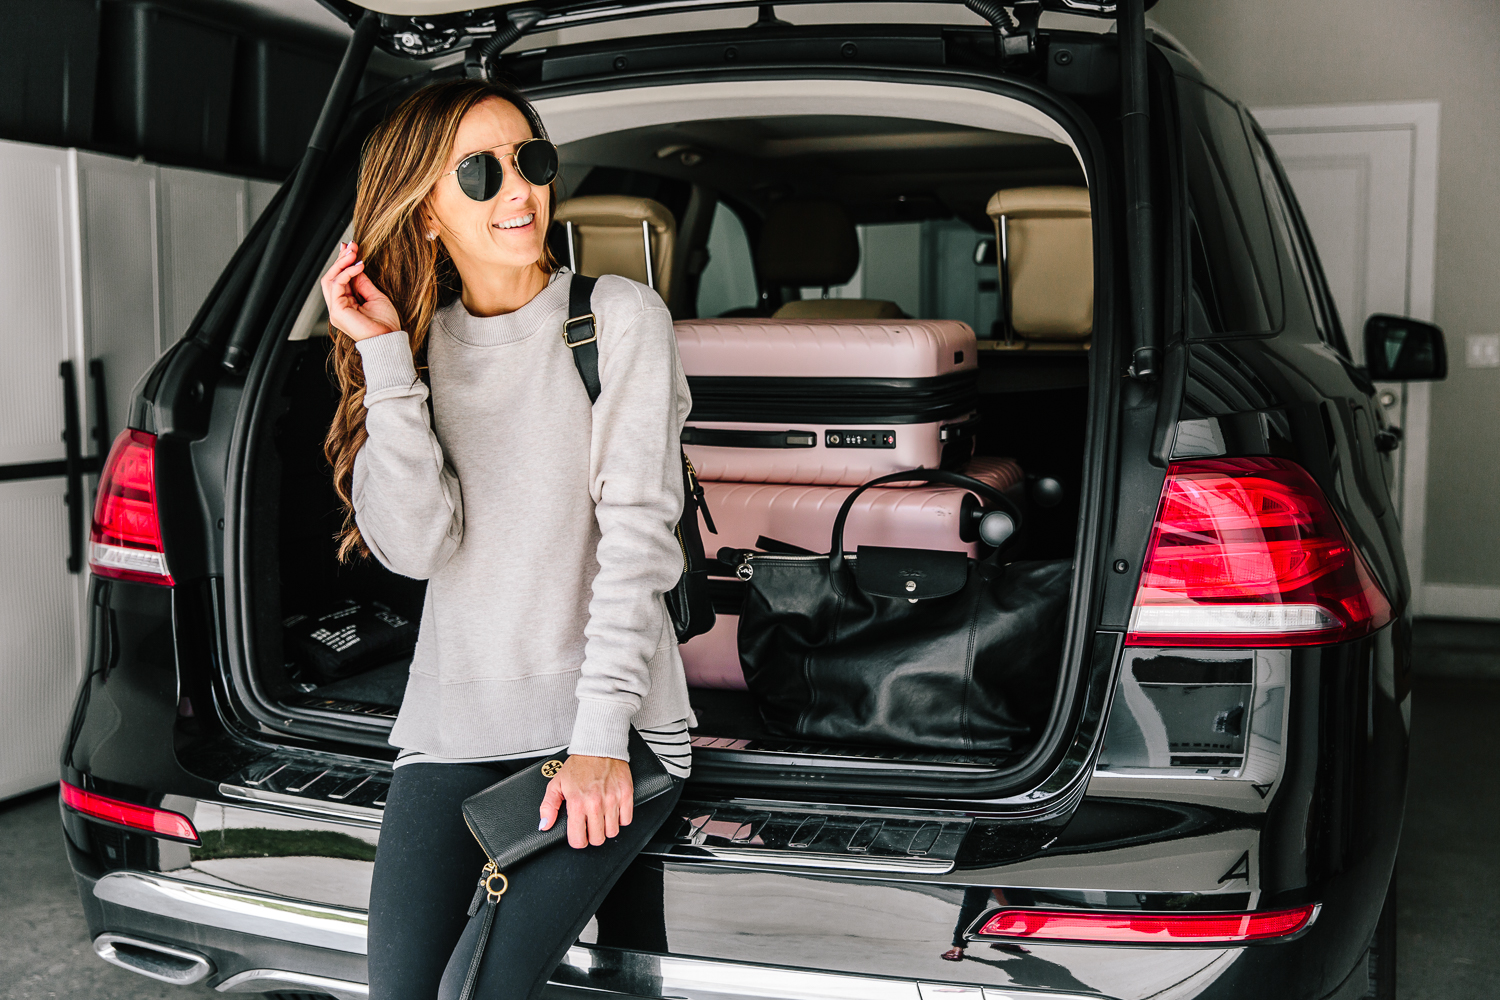 pink chevron spinner luggage set loaded into back of car